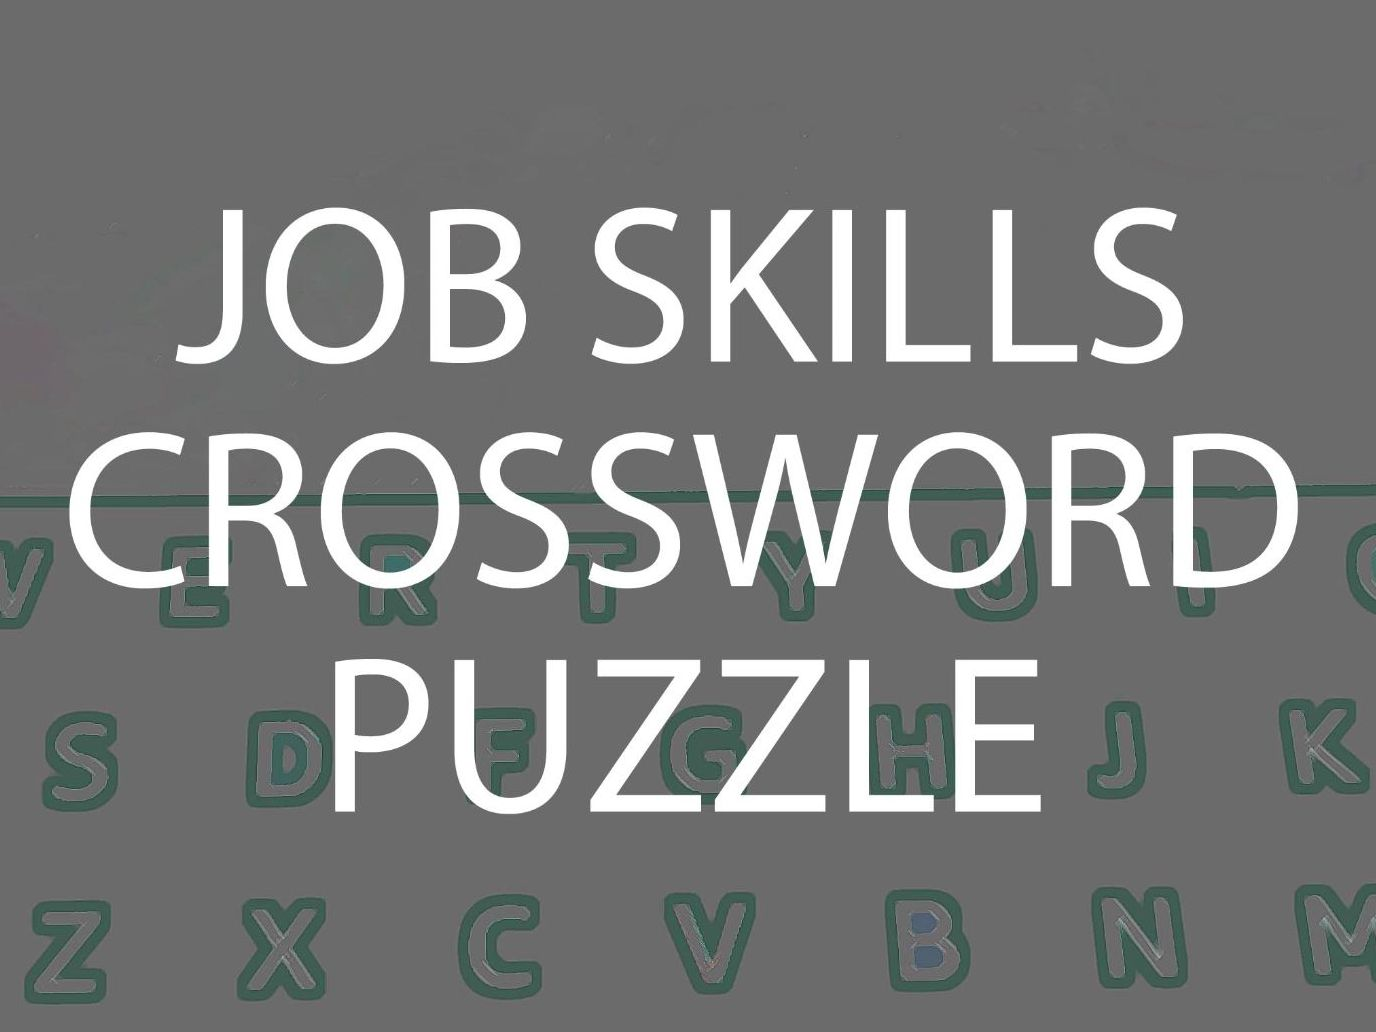 Communications Skills Quiz, Earning Money, Job Skills and Starting Work puzzles and Read My Body Language Bundle